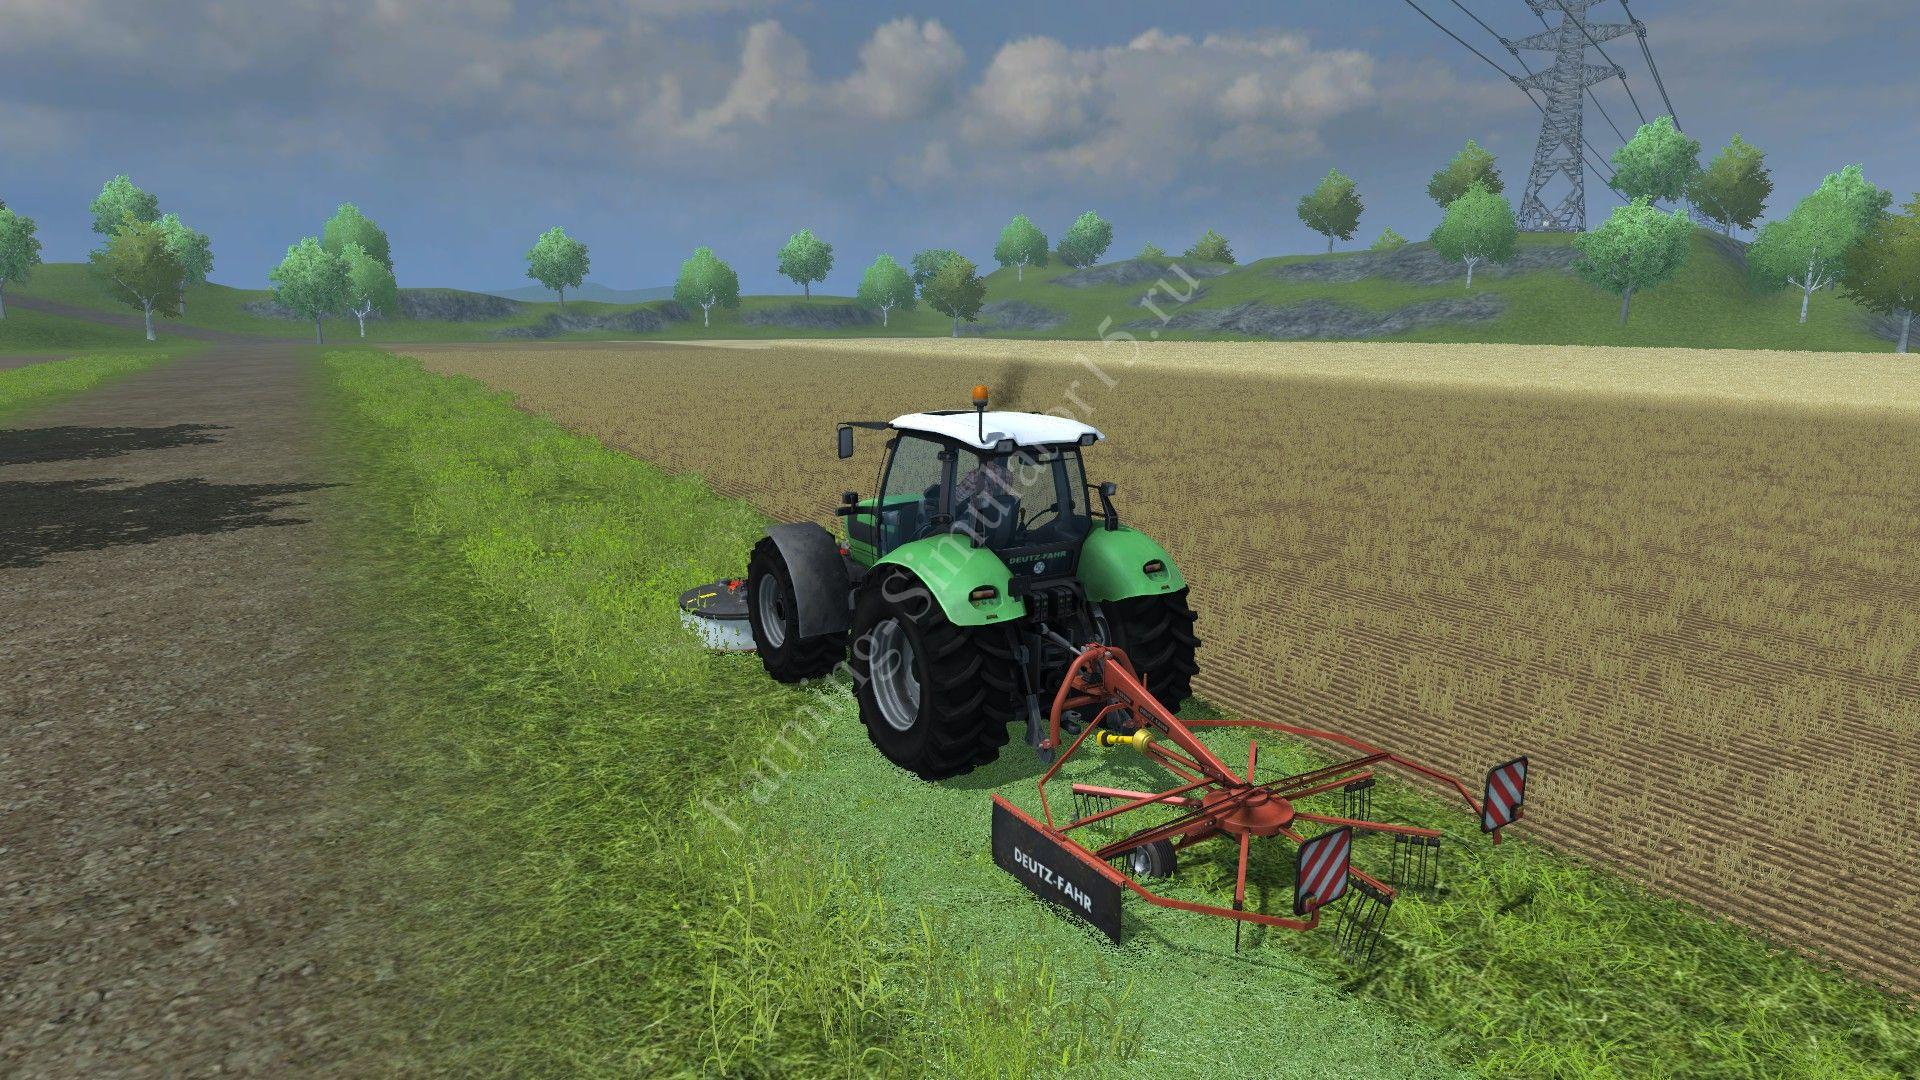 Мод ворошилки Fahr KS 85 DN v 1.0 Farming Simulator 2013, Farming Simulator 13